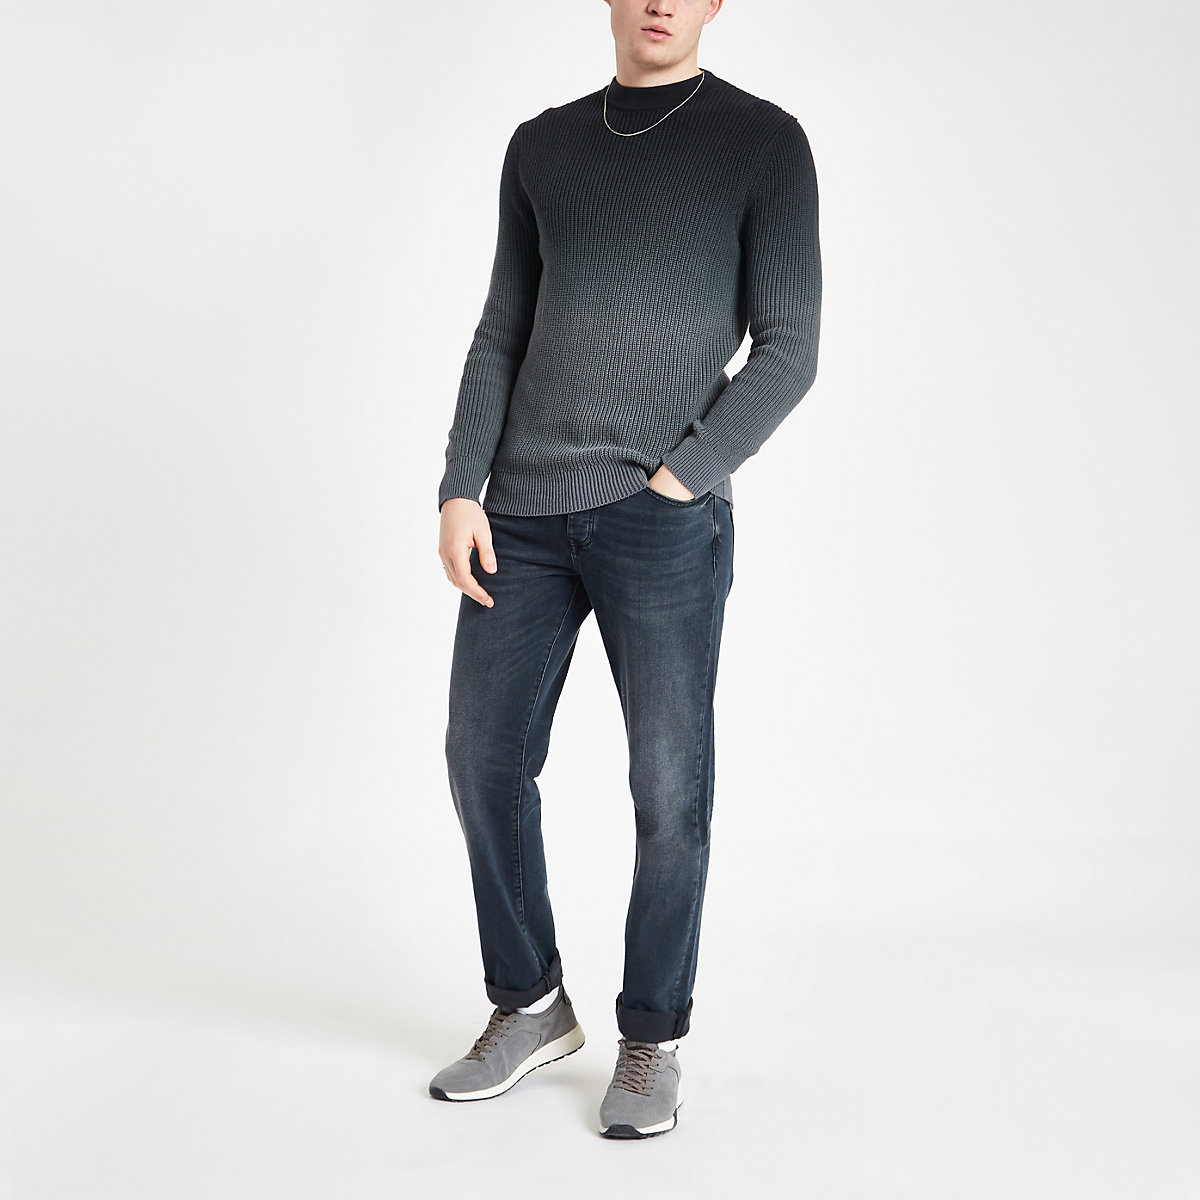 Grey ombre slim fit knit sweater